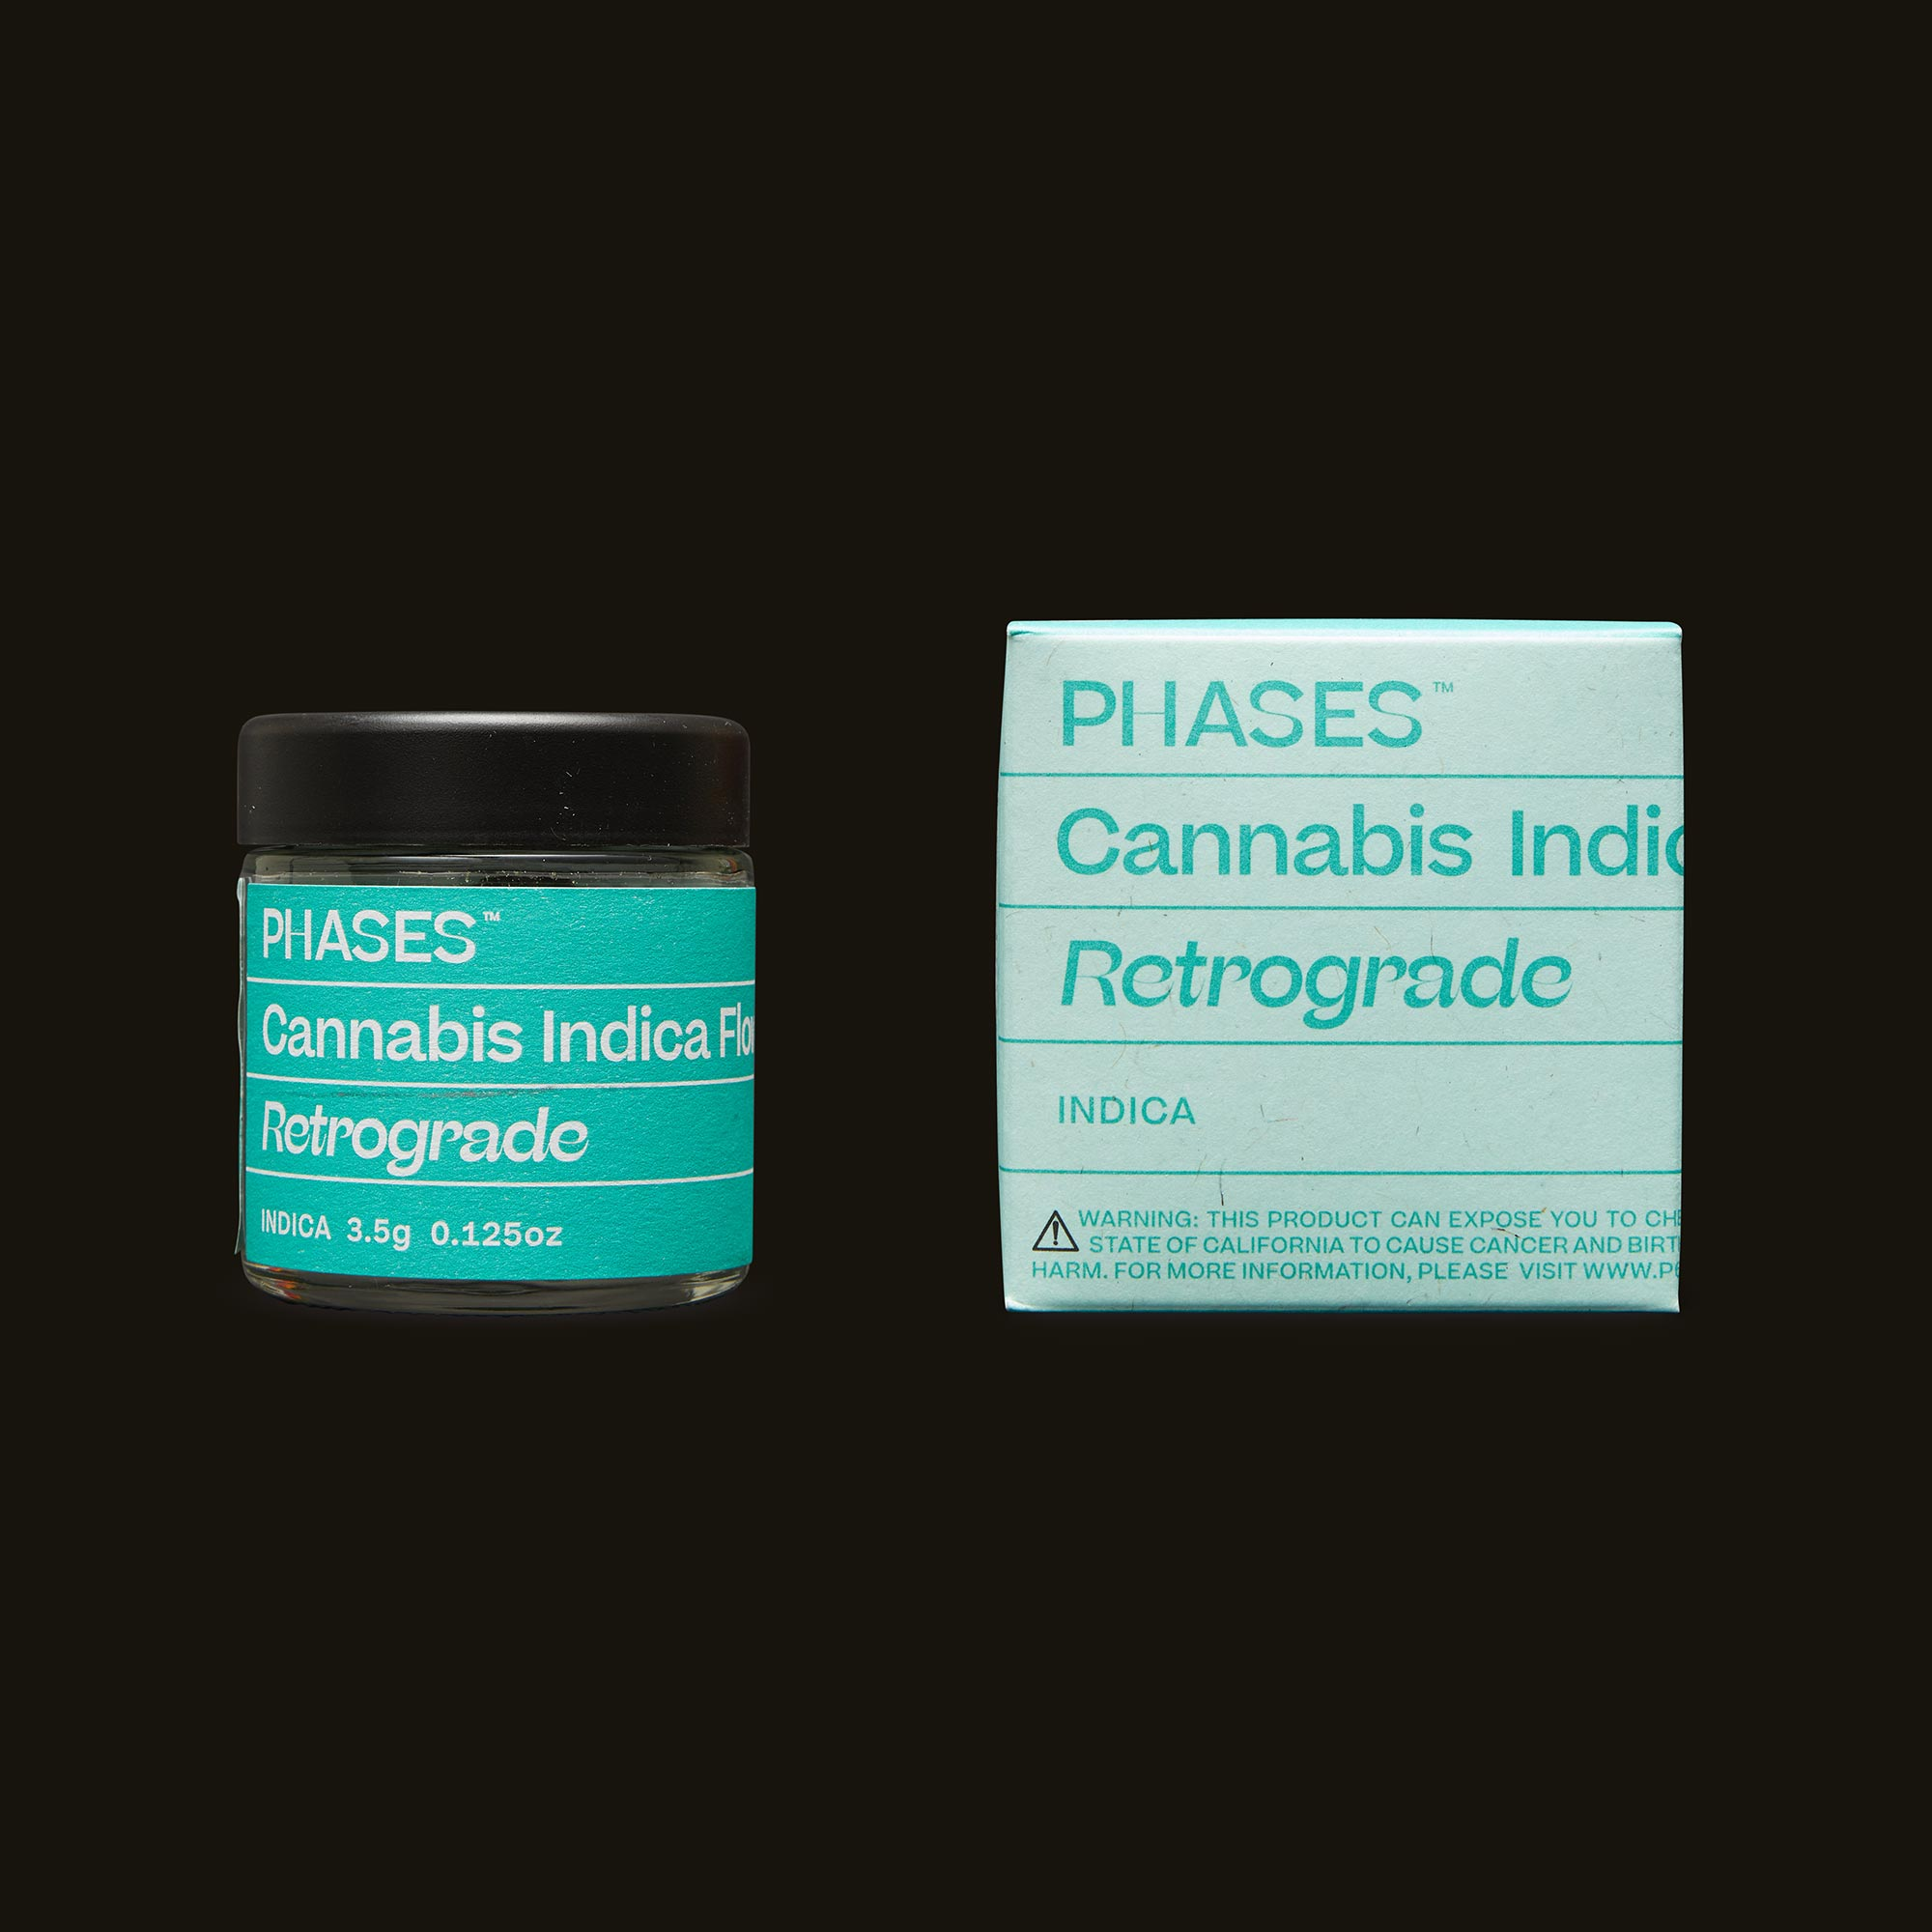 PHASES Retrograde Jar and Packaging